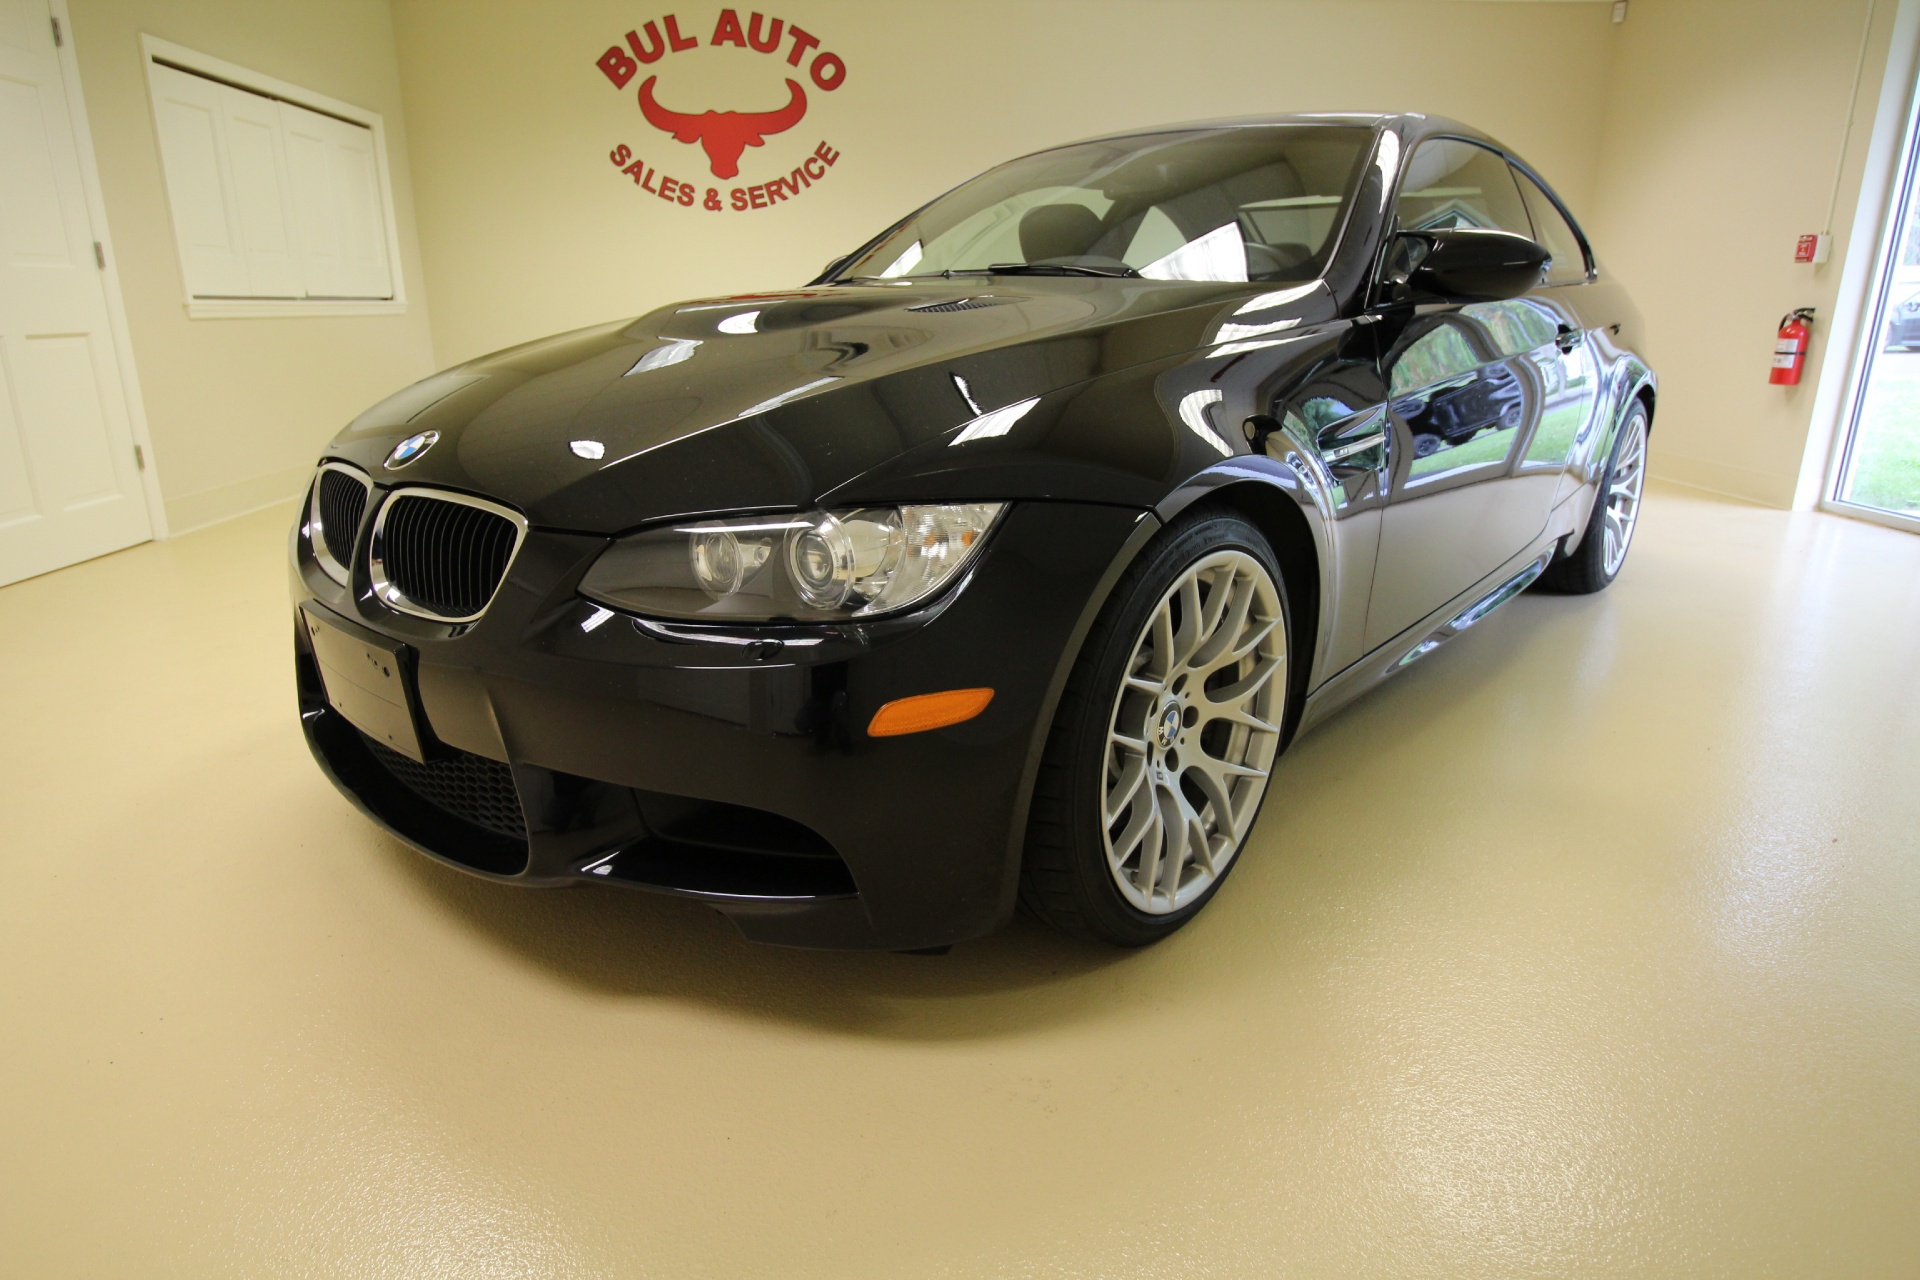 2013 bmw m3 rare 6 speed manual competition package navigation stock 16181 for sale near albany ny ny bmw dealer for sale in albany ny 16181 bul auto sales 2013 bmw m3 rare 6 speed manual